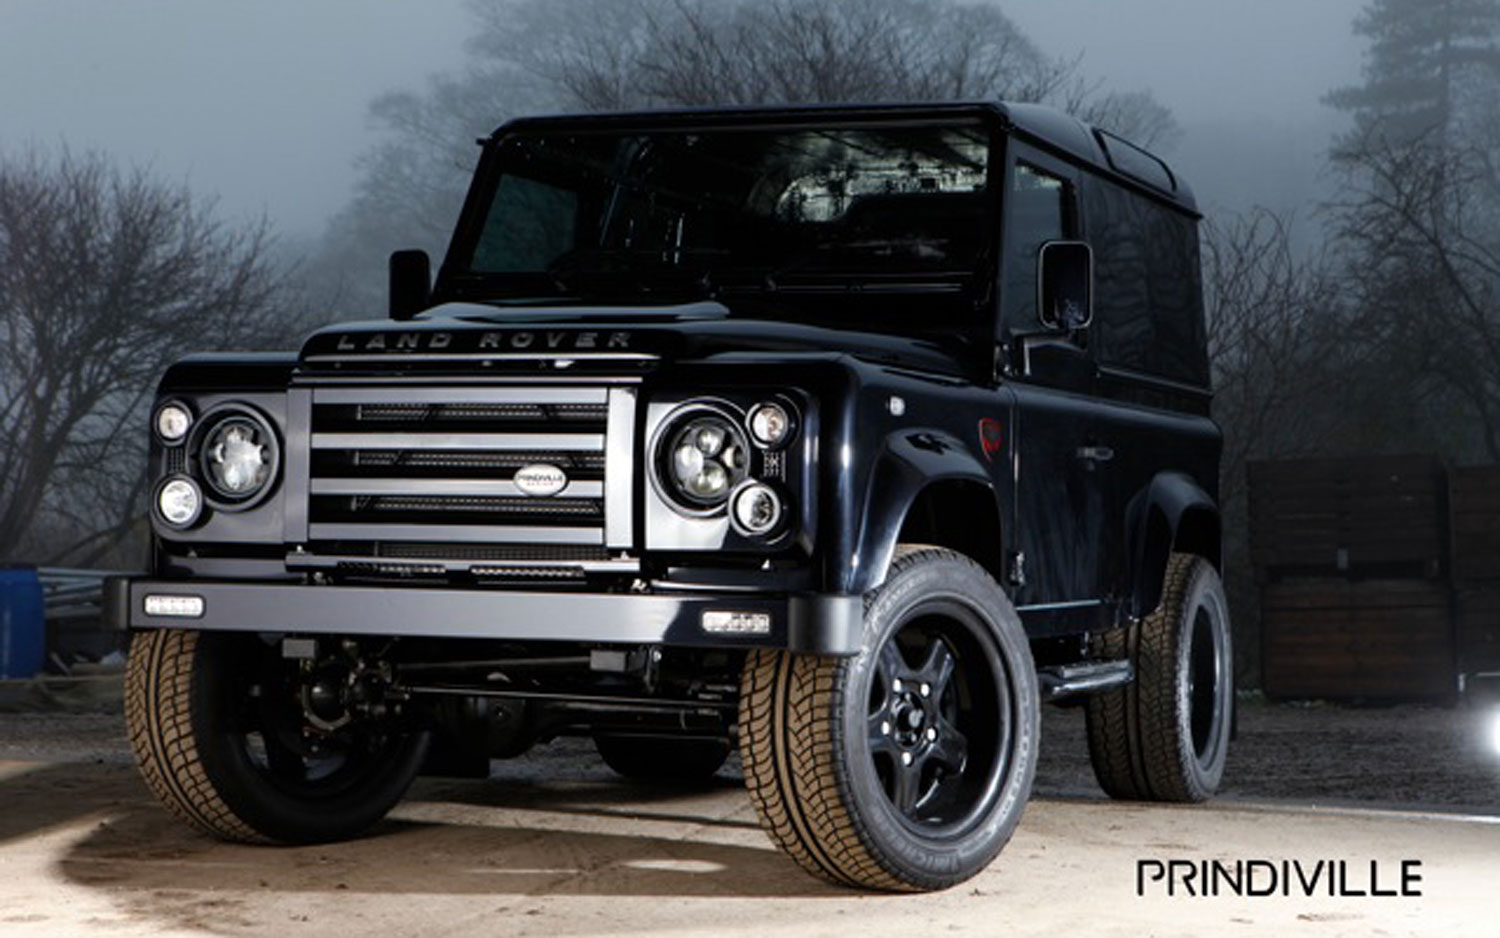 Limited Edition Land Rover Defender By Prindiville Design